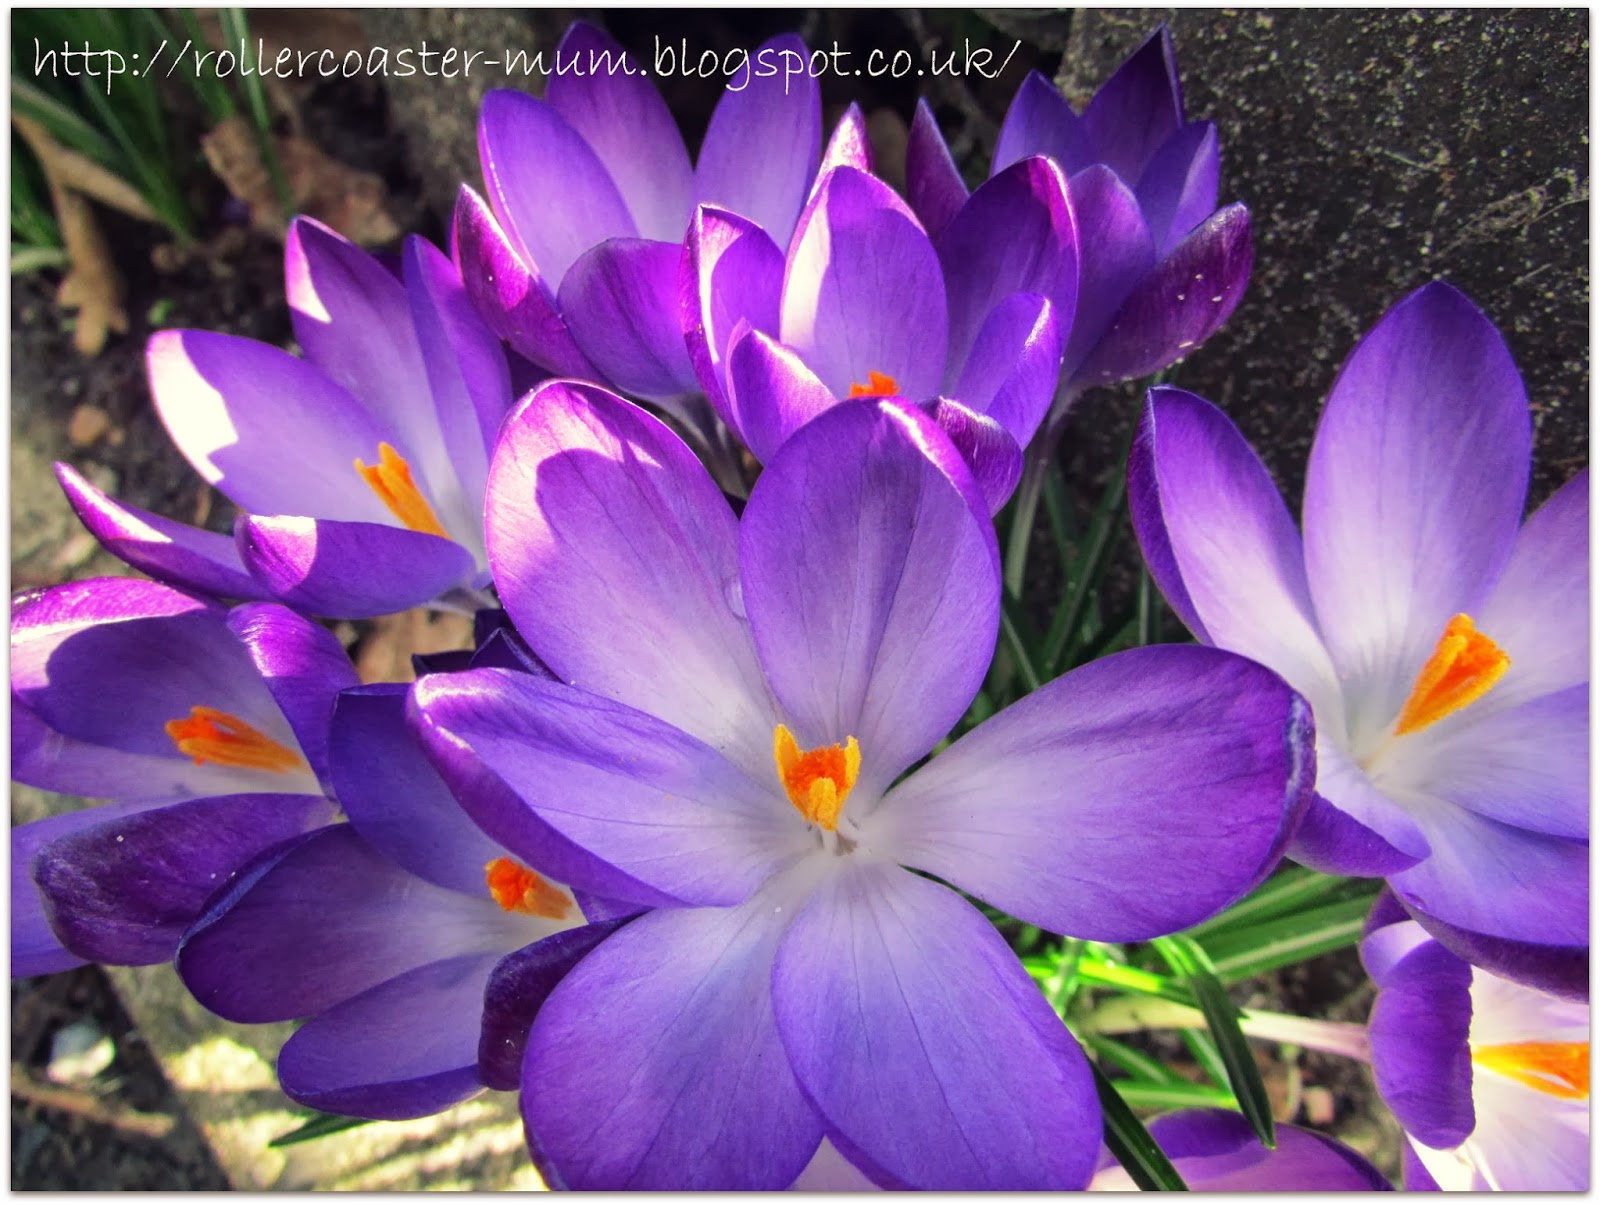 a host of purple crocus flowers